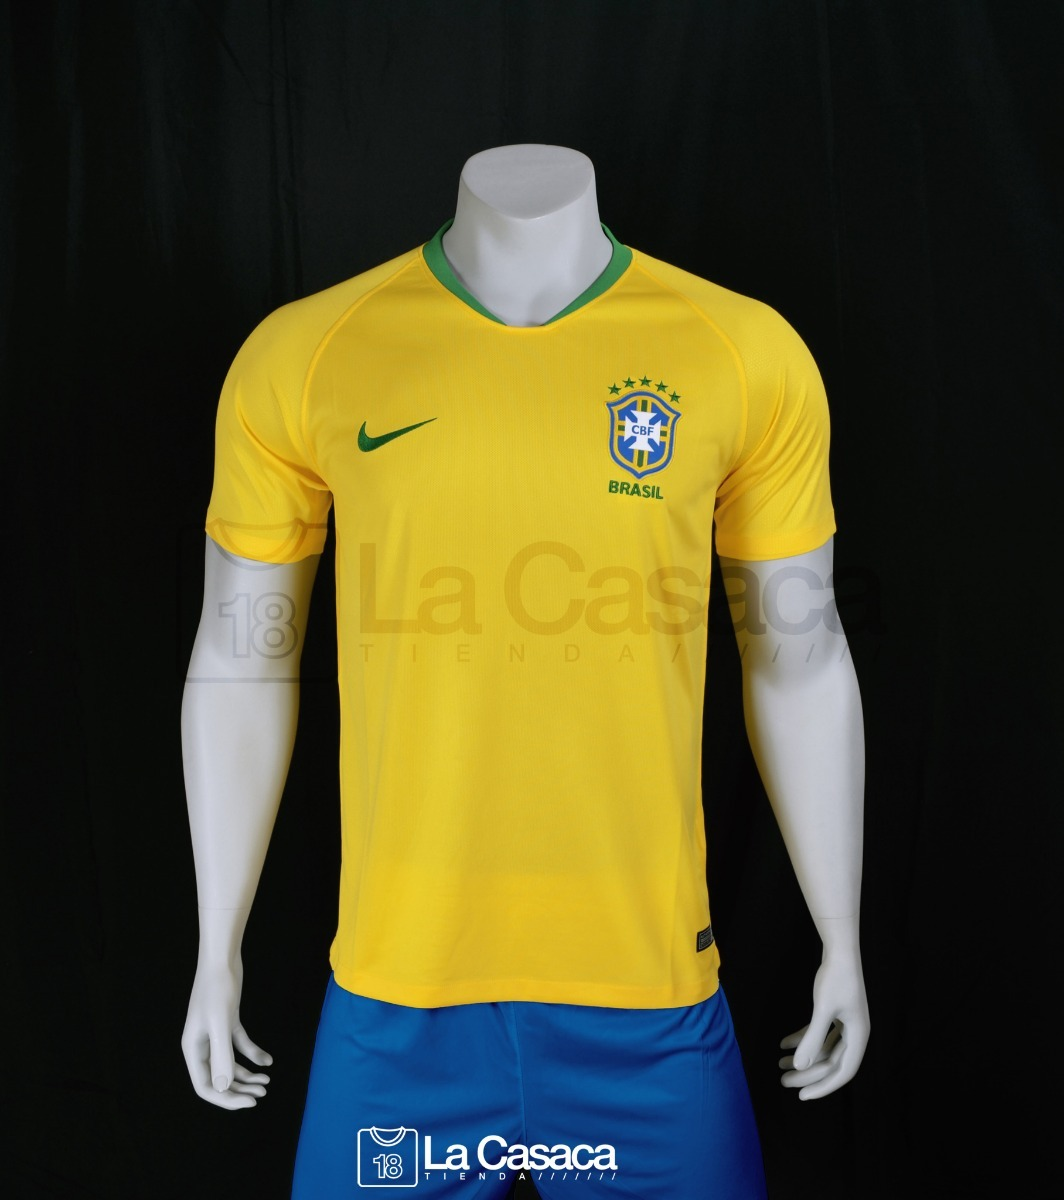 3cd74d84a7 Camiseta Seleccion Brasil Local 2018 Neymar Jr Mundial -   149.900 ...